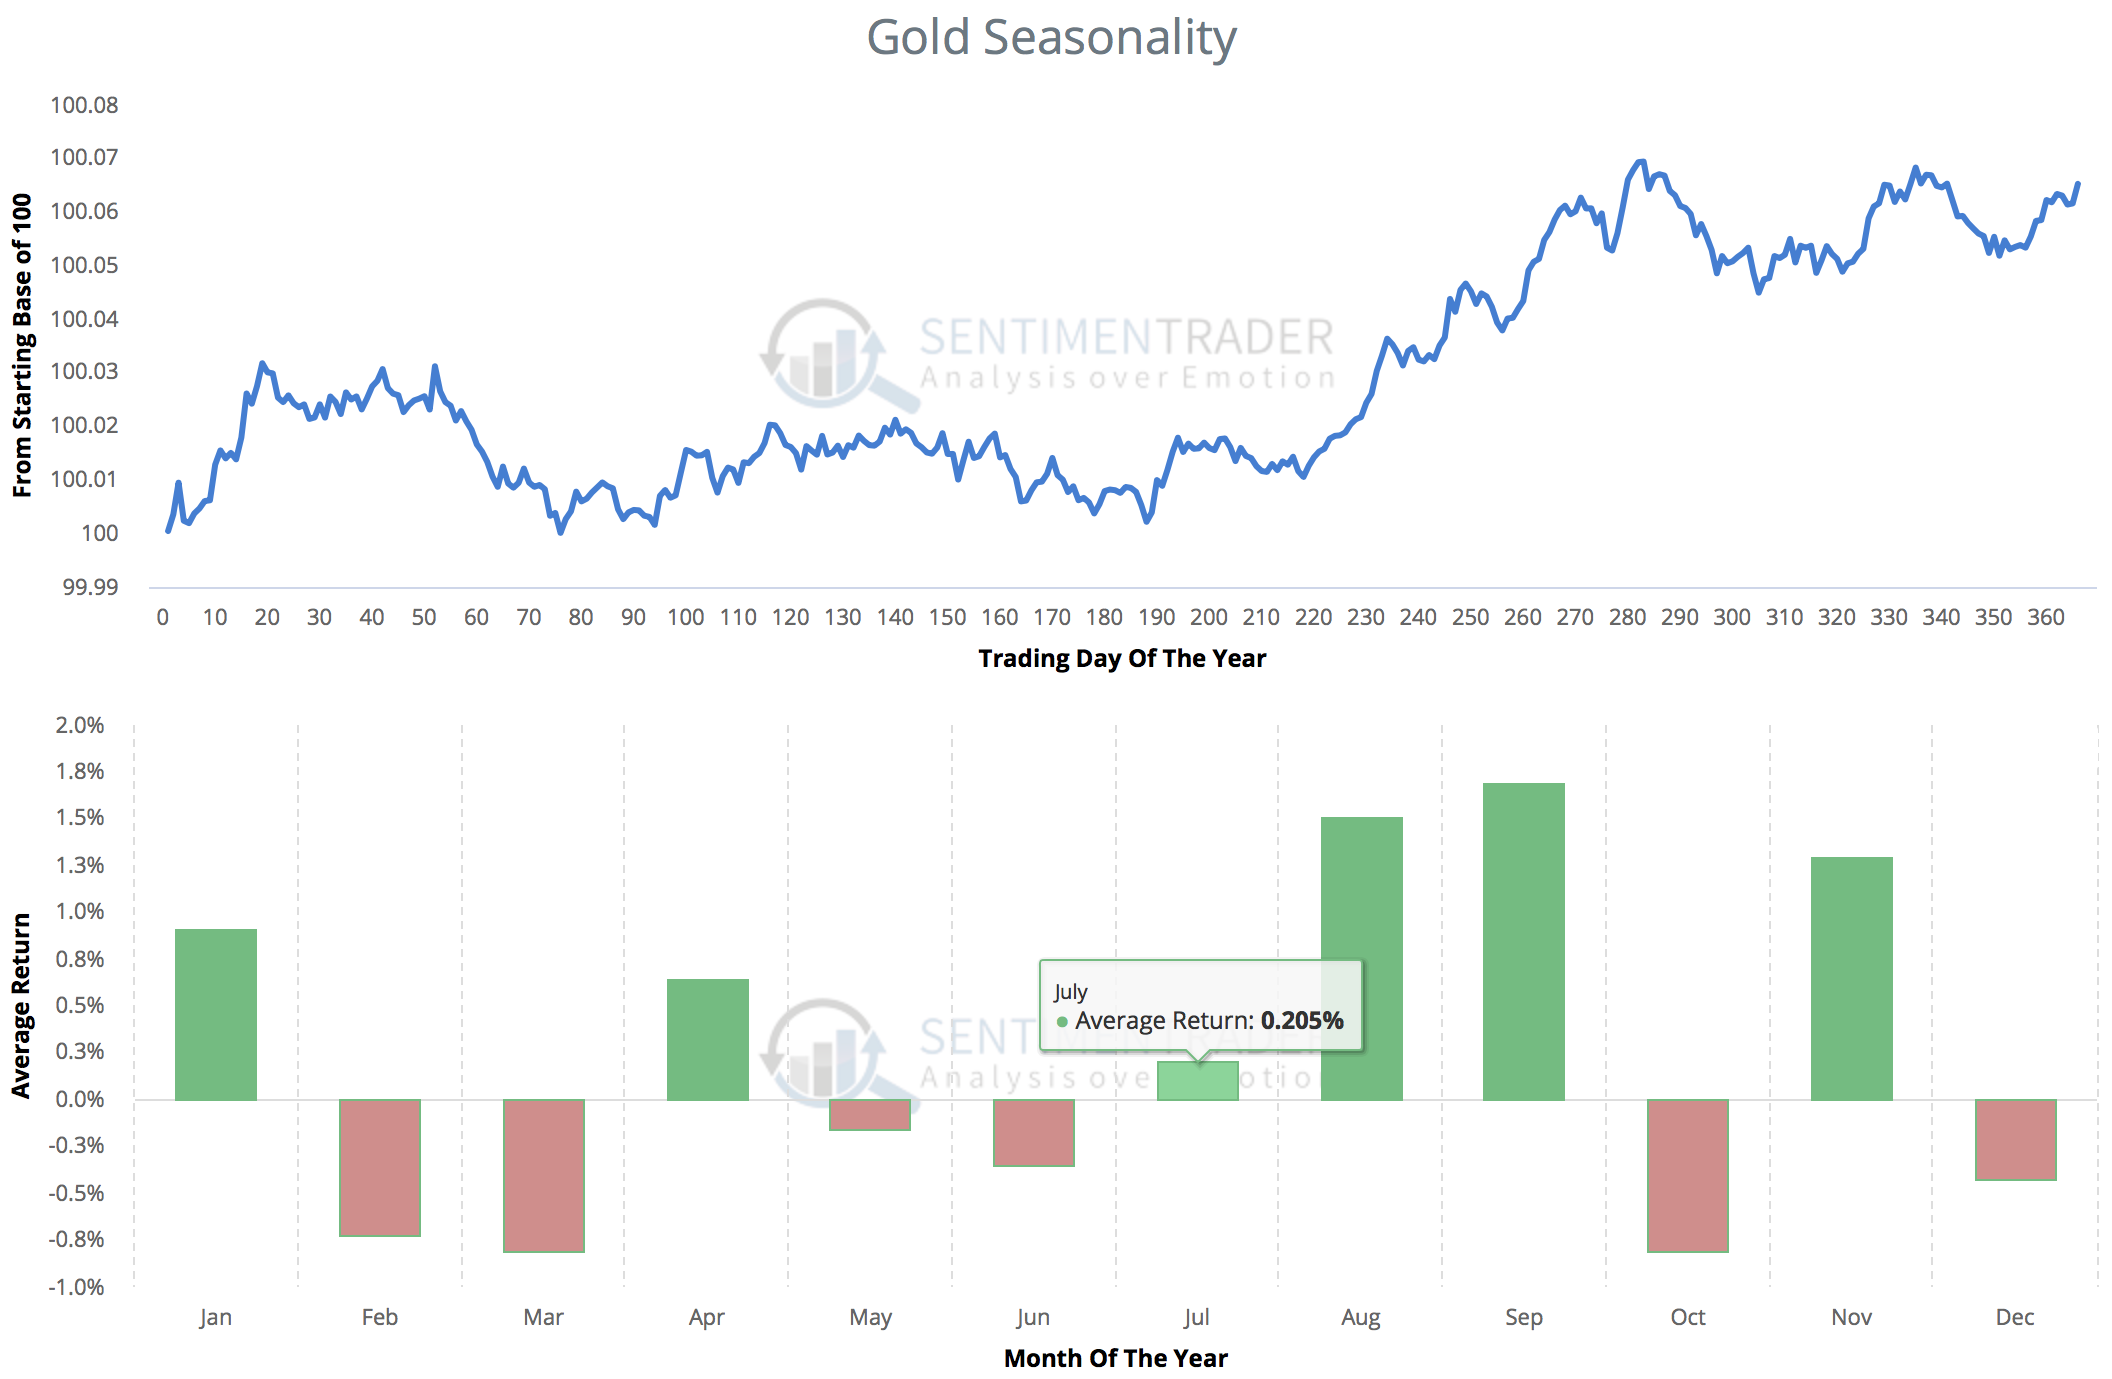 Gold Seasonality, statistical average over the last 40 years